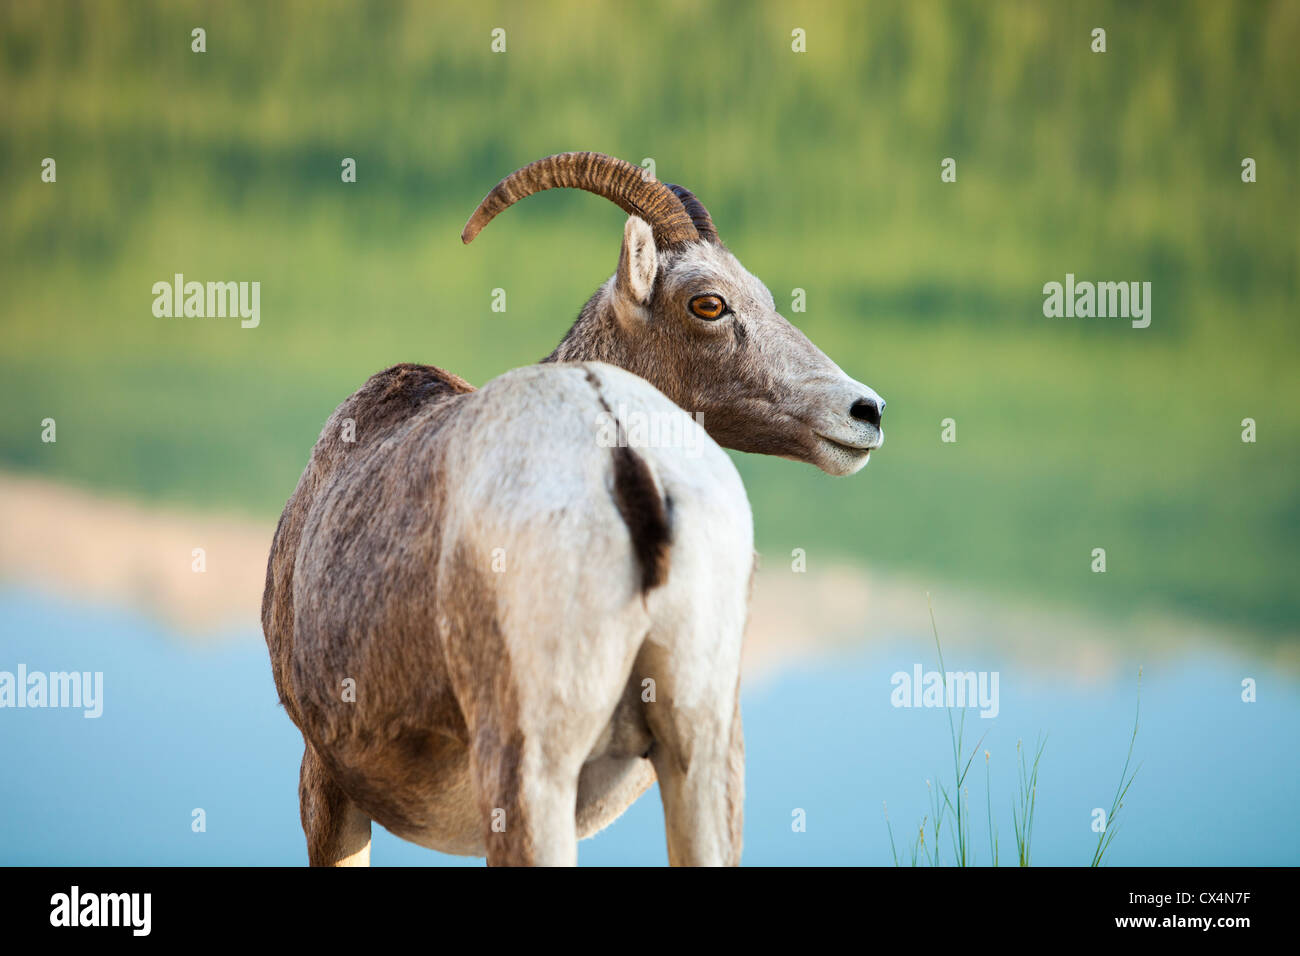 Female Big Horn Sheep (Ovis canadensis) in Jasper National Park, Rocky Mountains, Canada - Stock Image